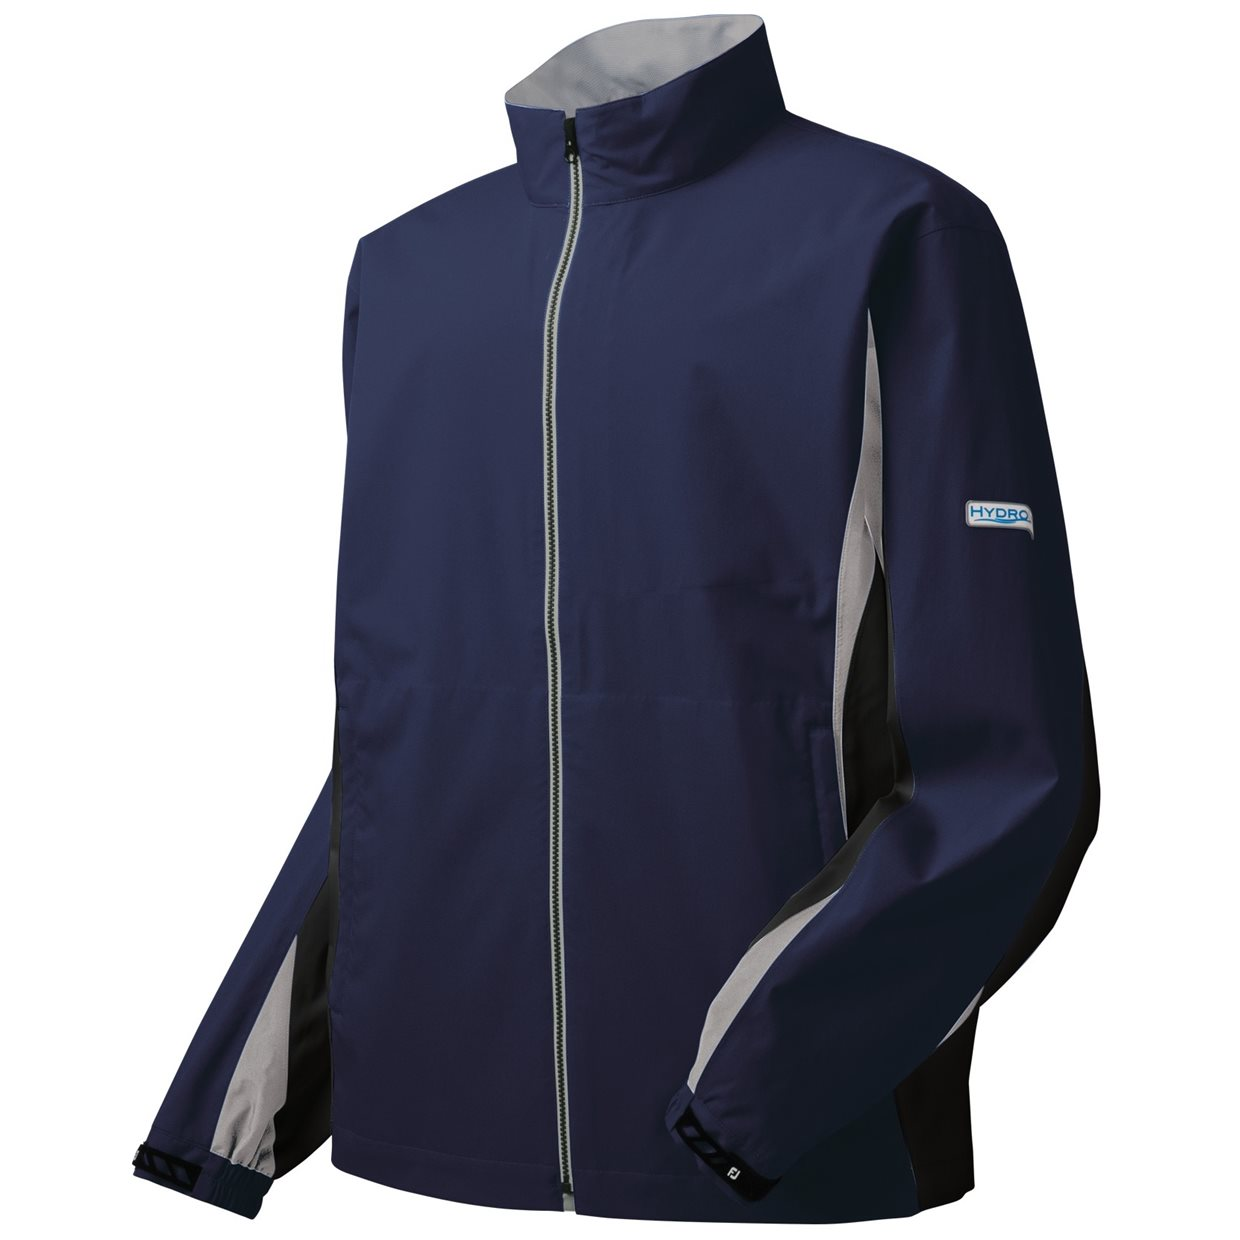 Footjoy Dryjoys Hydrolite L S Rainwear Apparel At